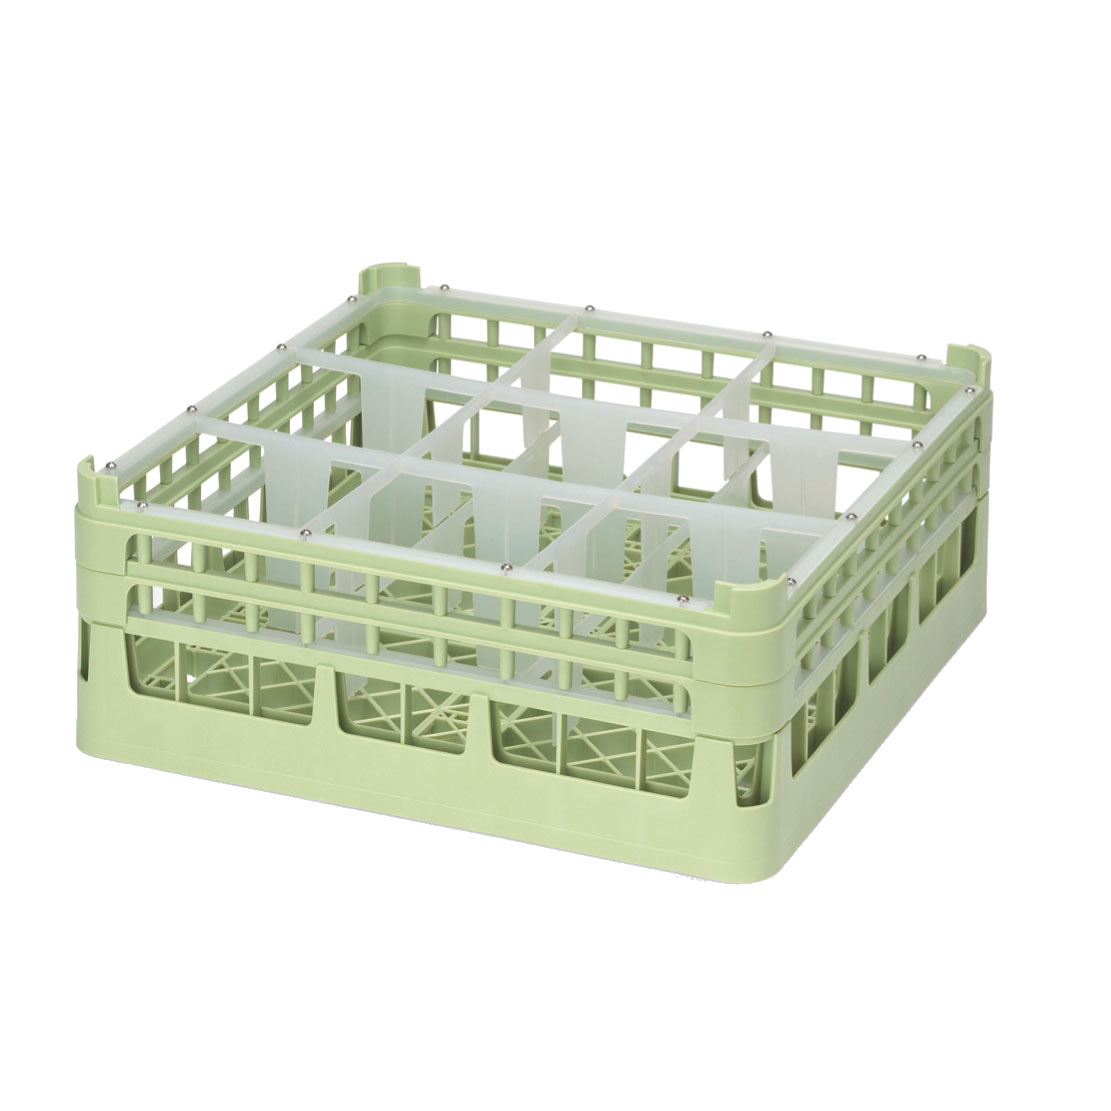 Vollrath 52762 dishwasher rack, glass compartment